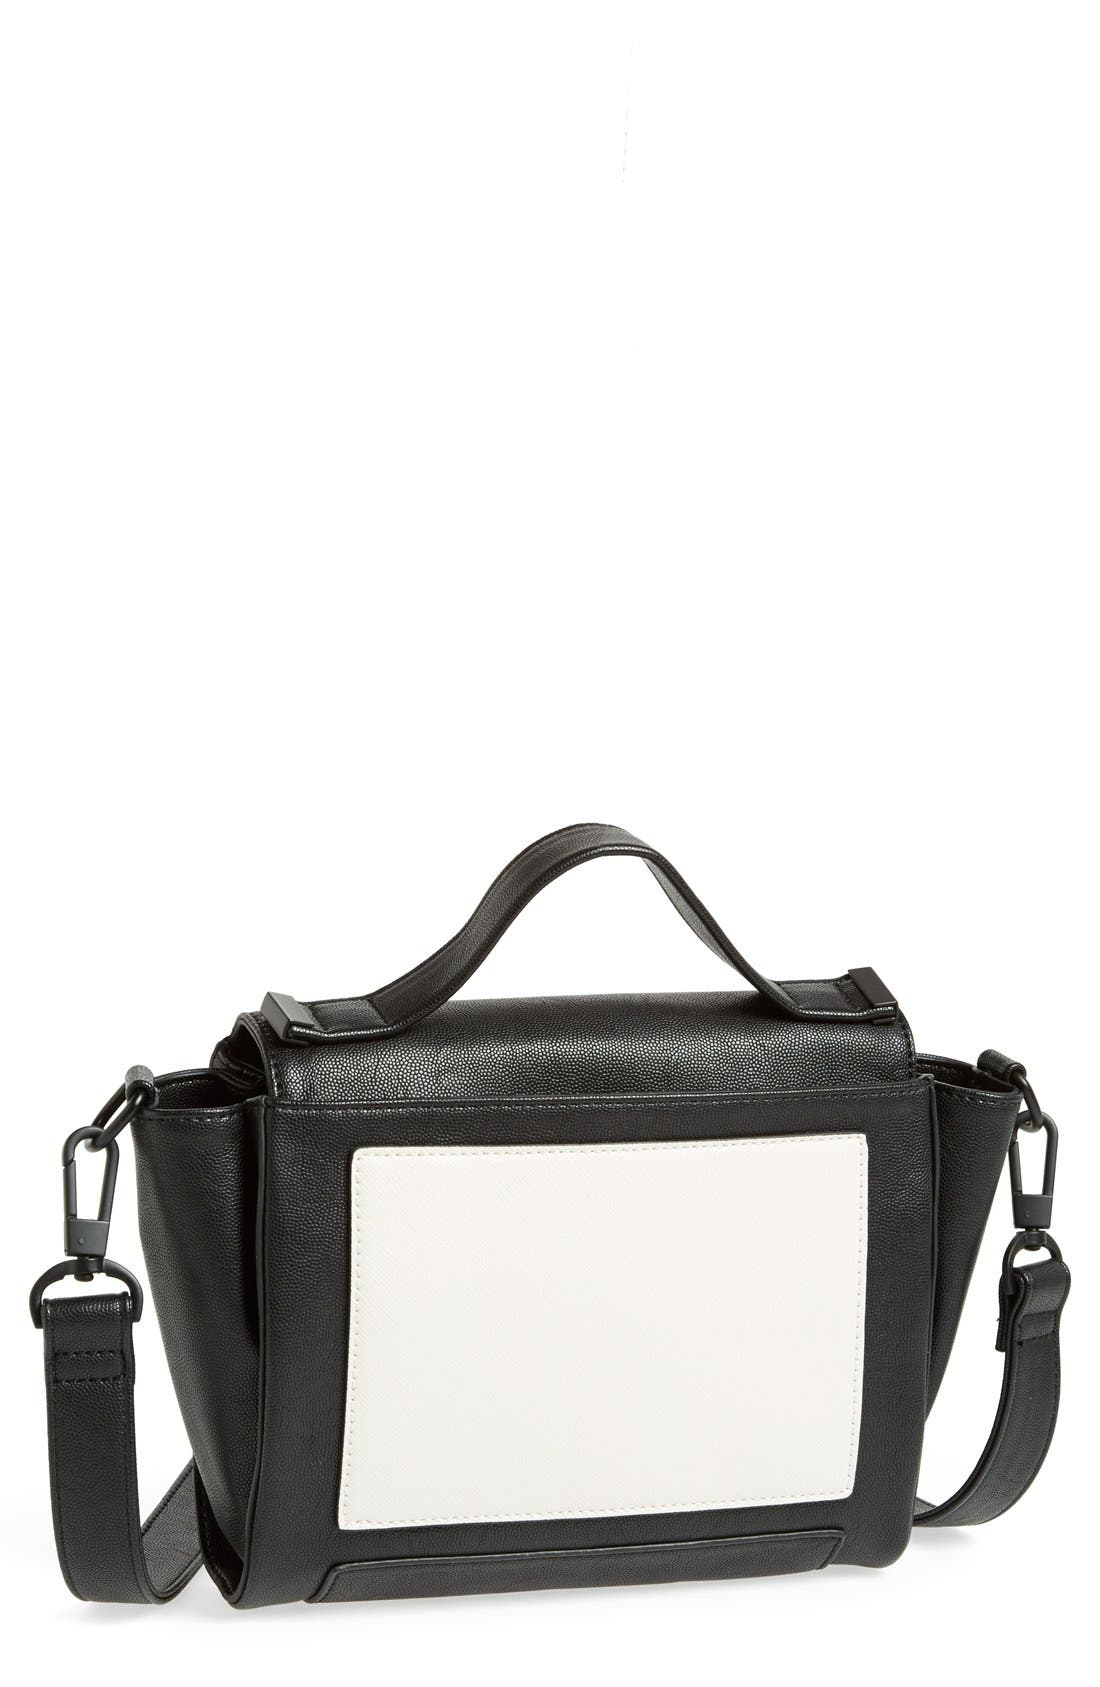 Alternate Image 1 Selected - French Connection 'Hyde' Crossbody Bag